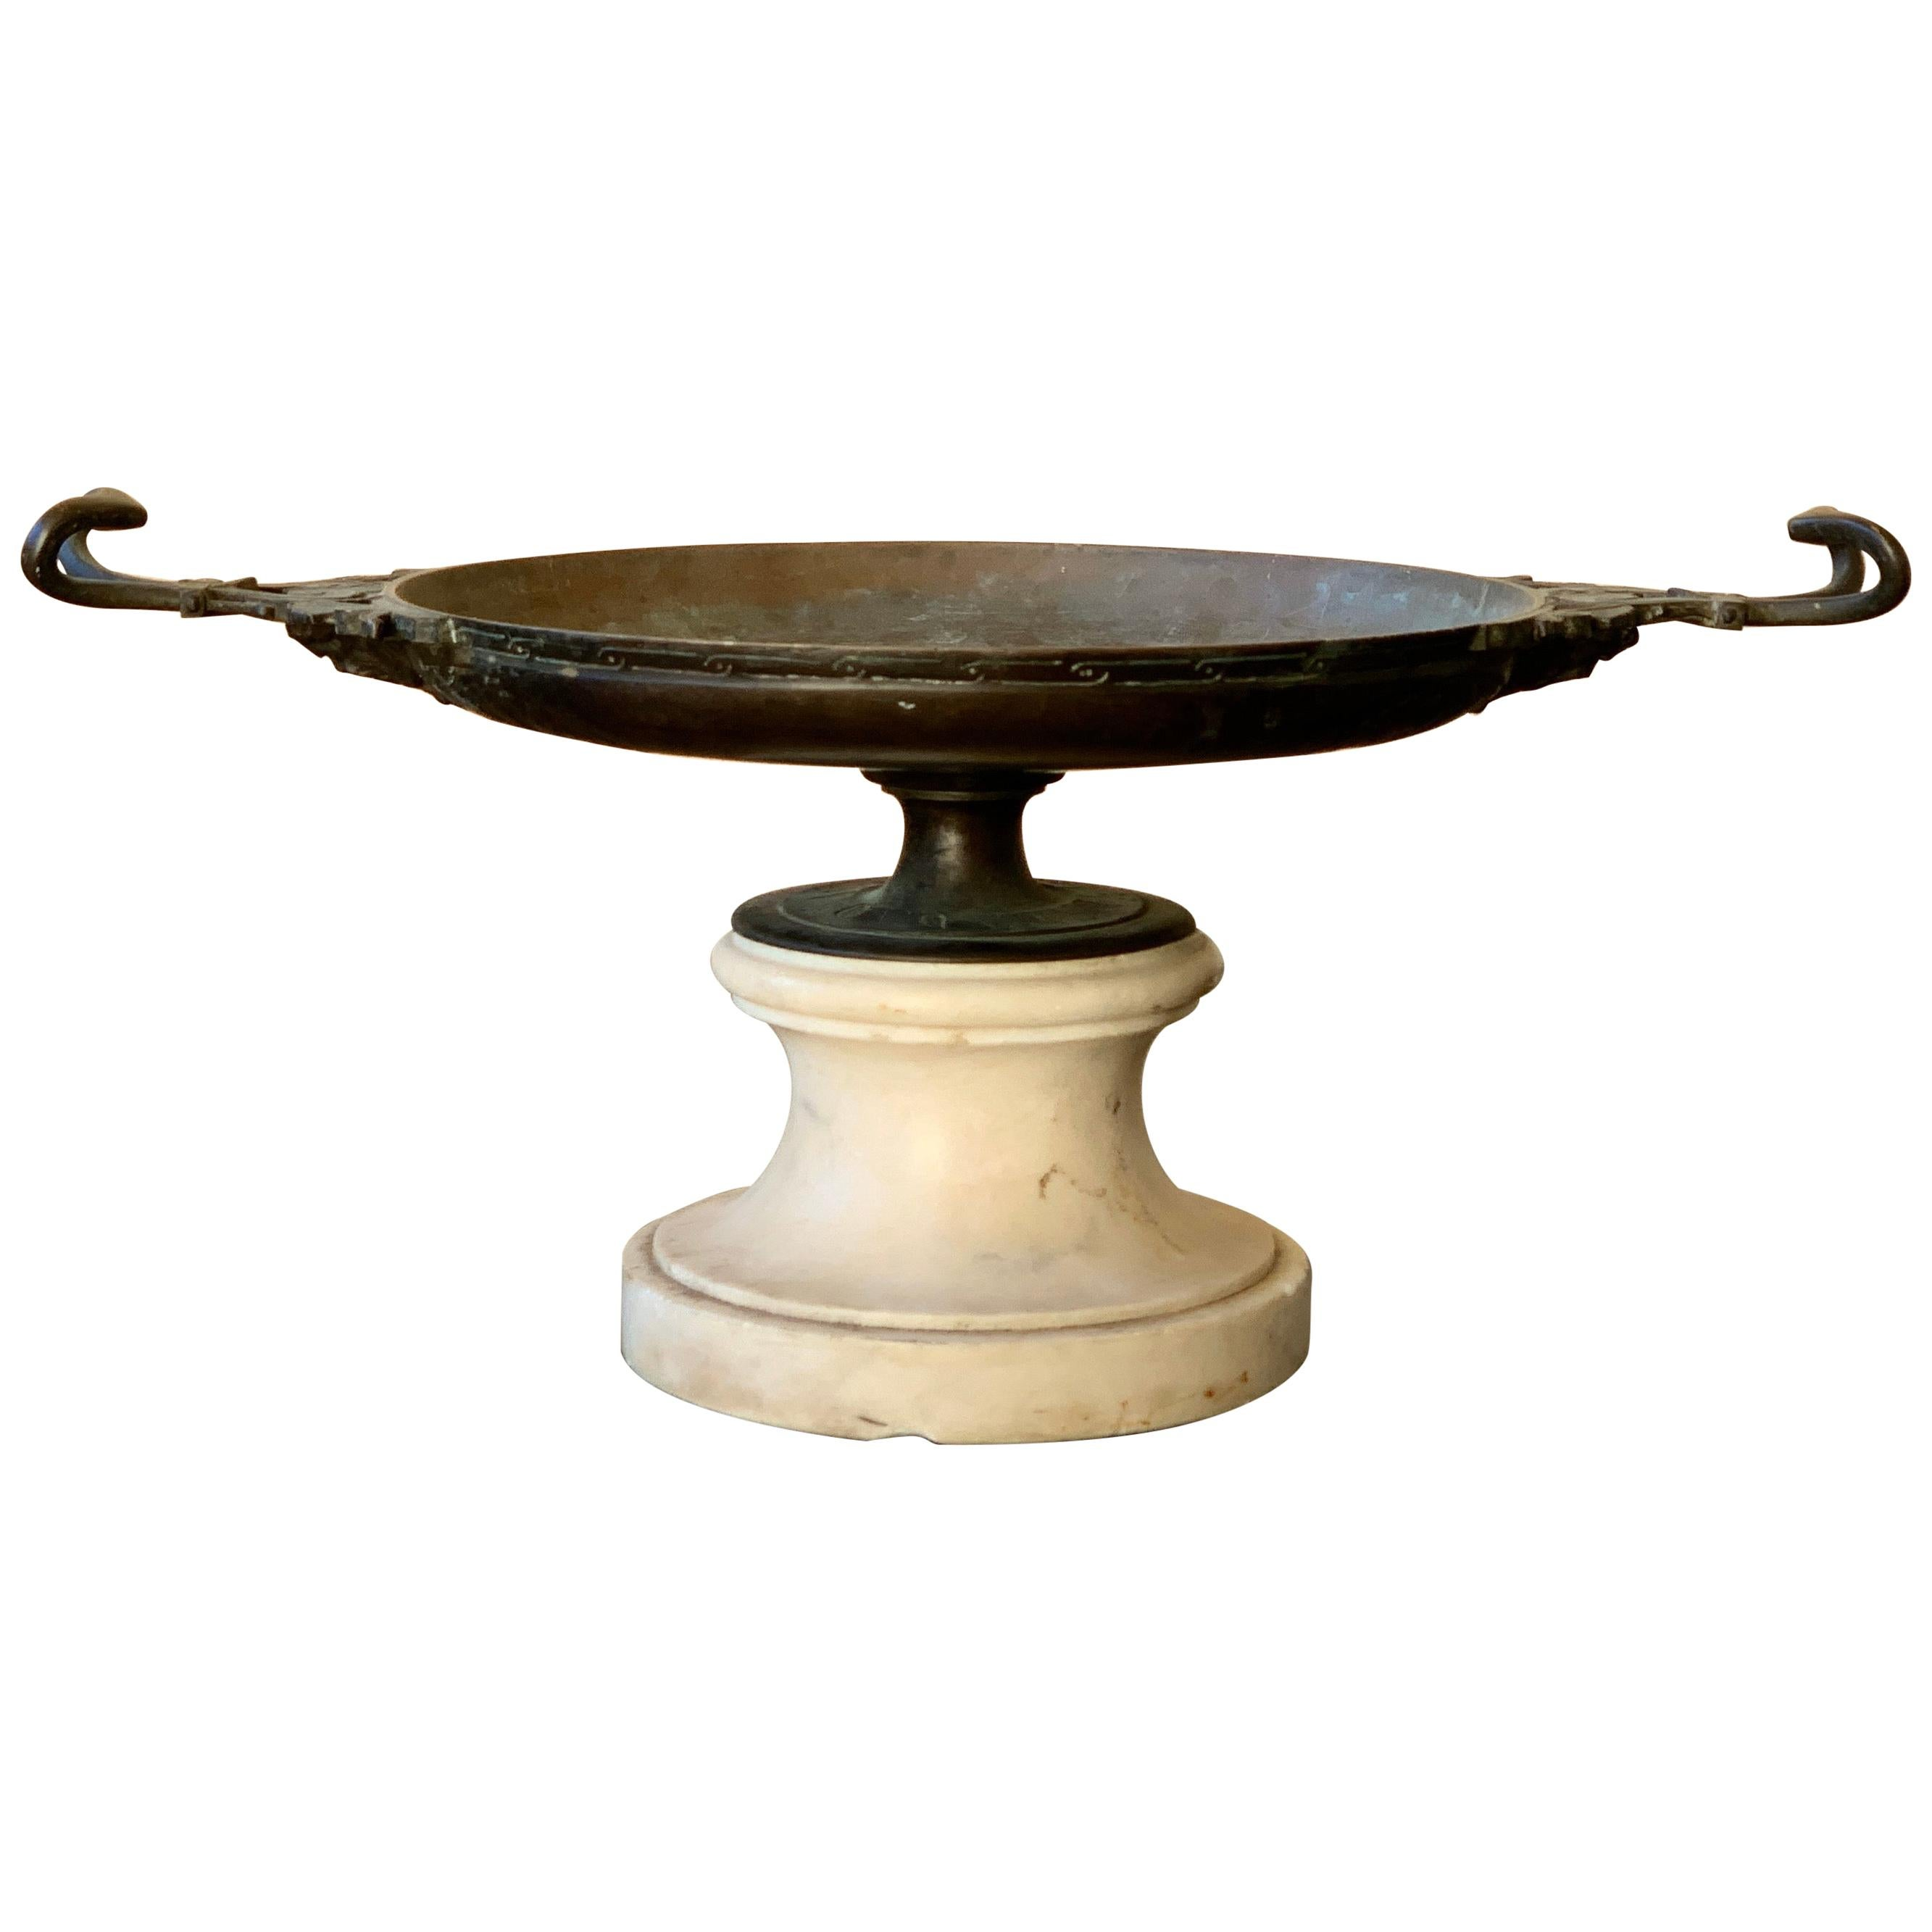 Neoclassical Greek Bronze Kylix Centerpiece on a Marble Base, 19th Century